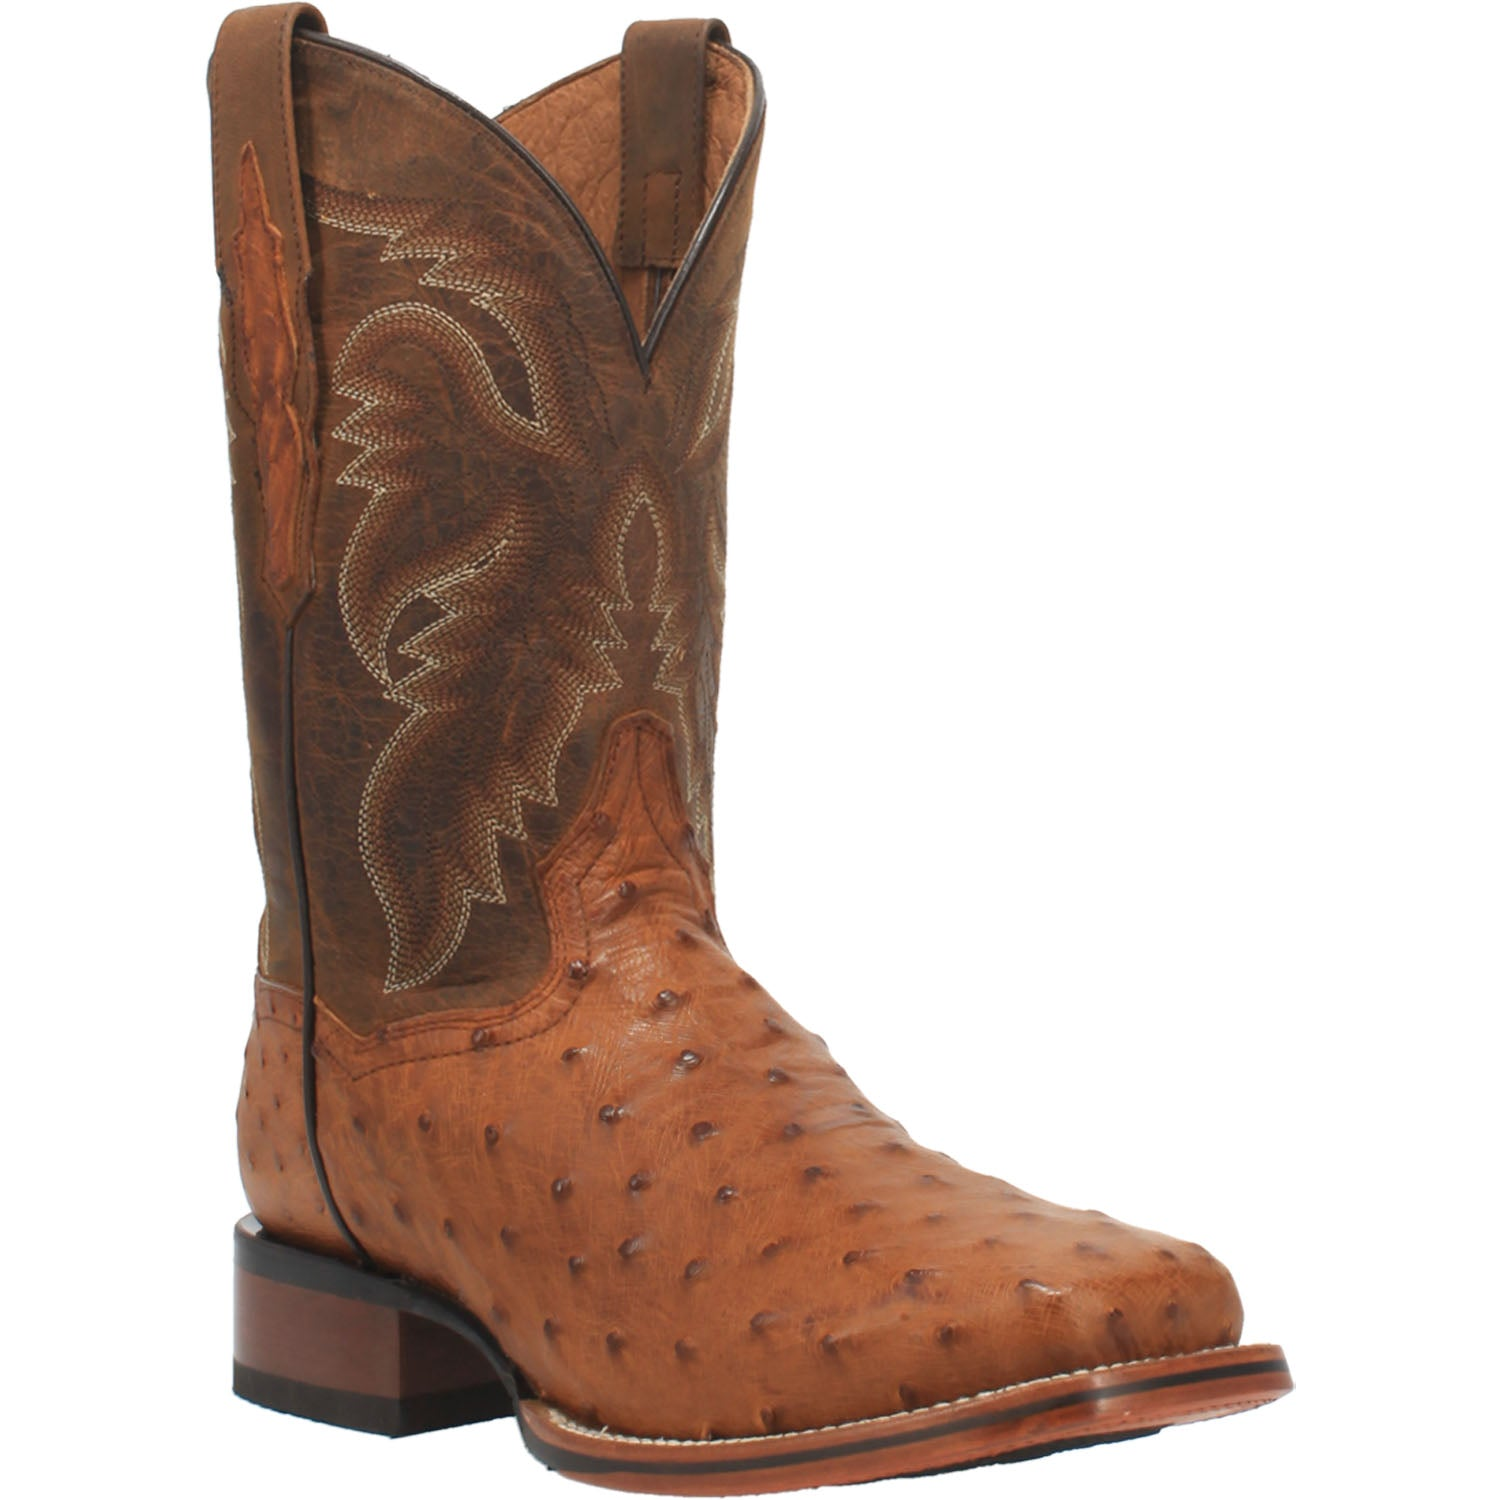 ALAMOSA FULL QUILL OSTRICH BOOT 15677888626730